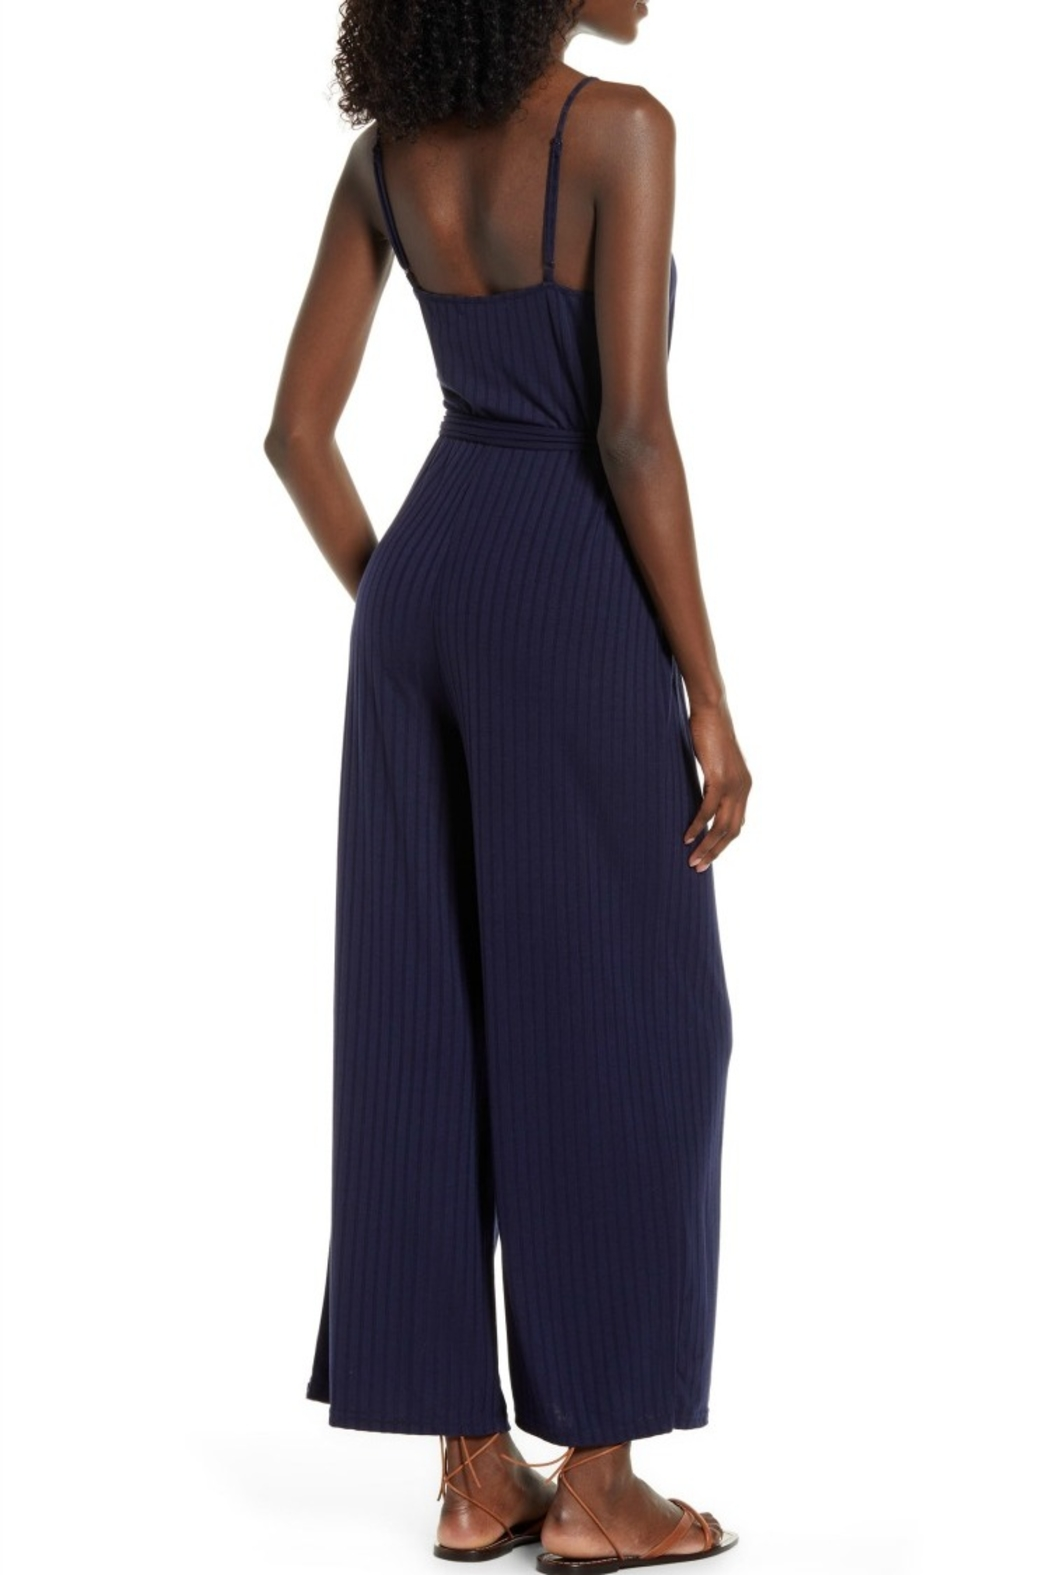 Band Of Gypsies JOURNEY JUMPSUIT - Side Cropped Image